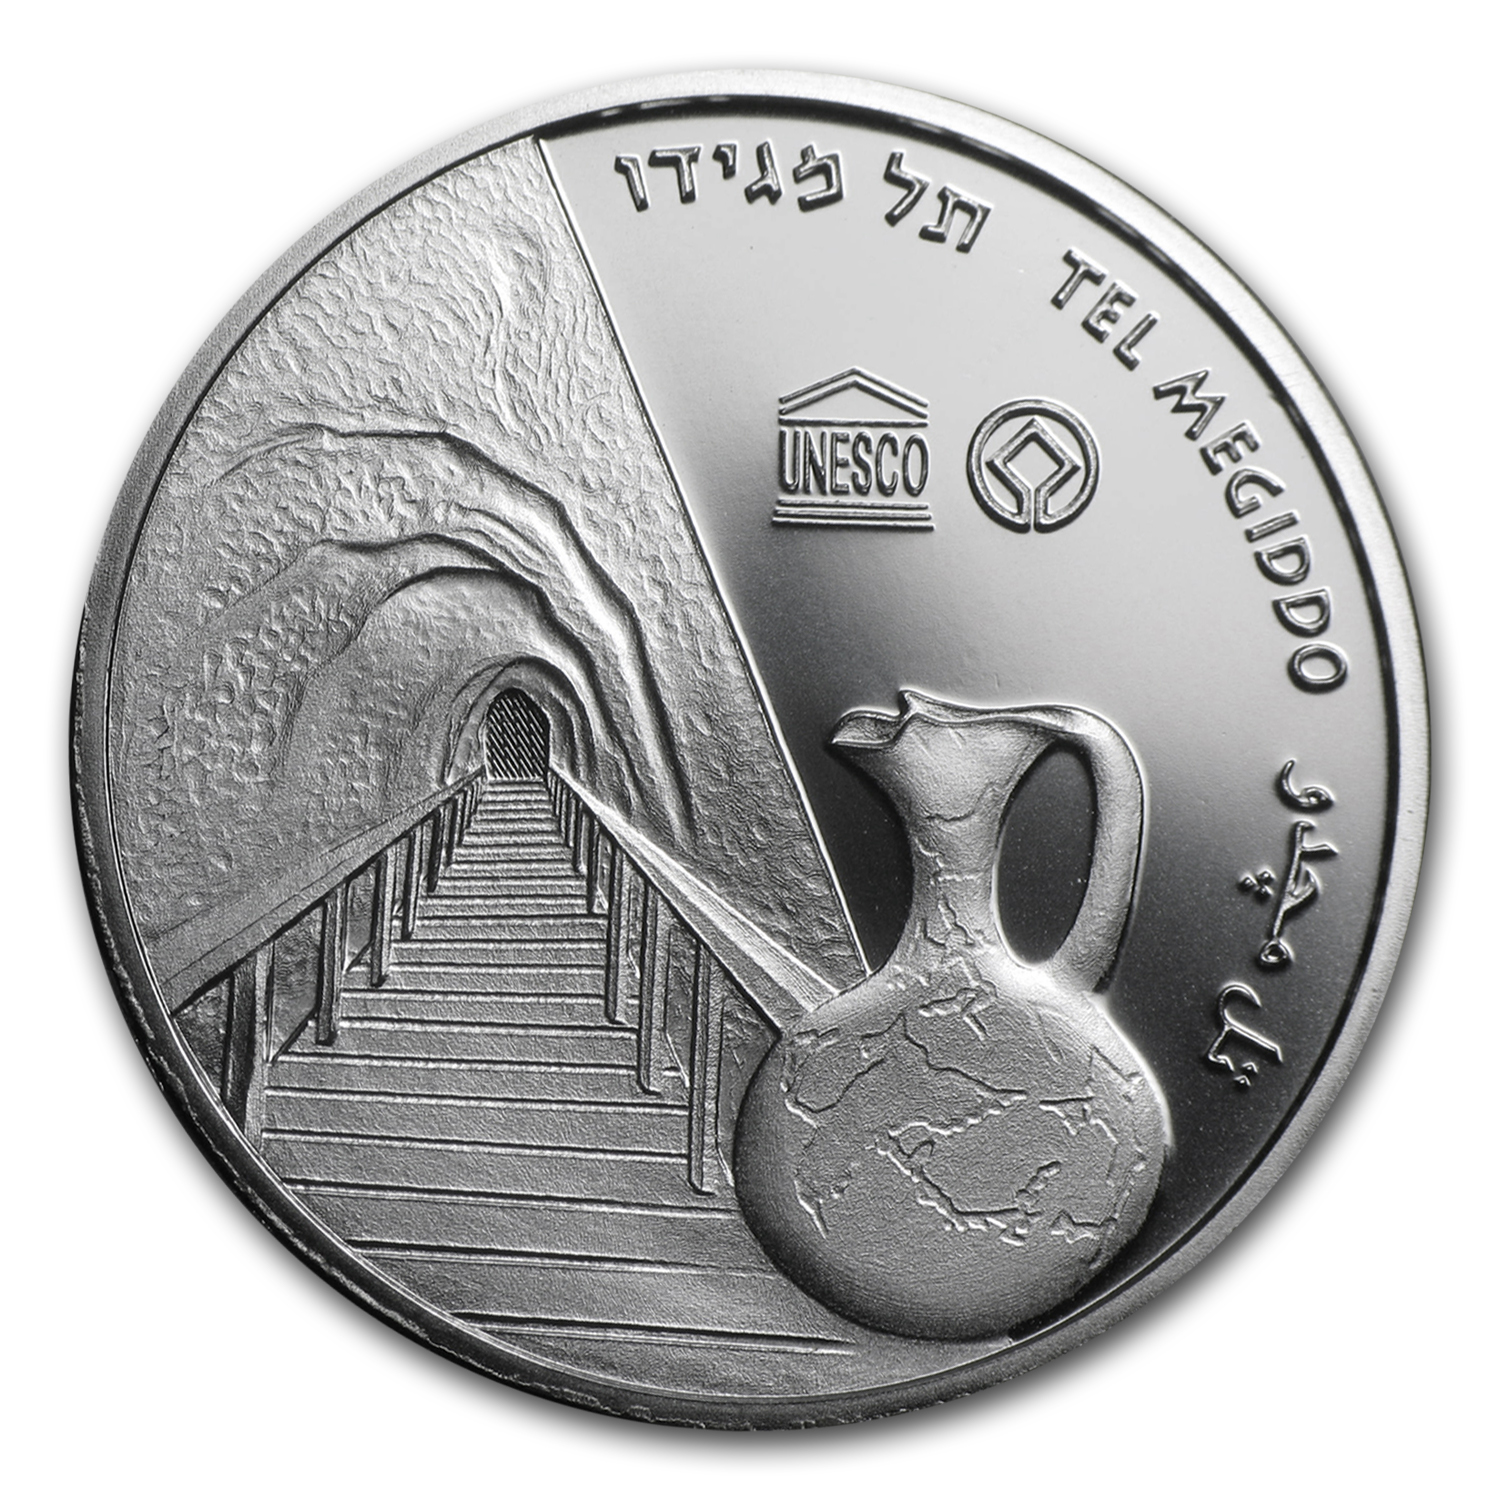 2012 Israel Tel Megiddo Proof-Like Silver 1 NIS Coin